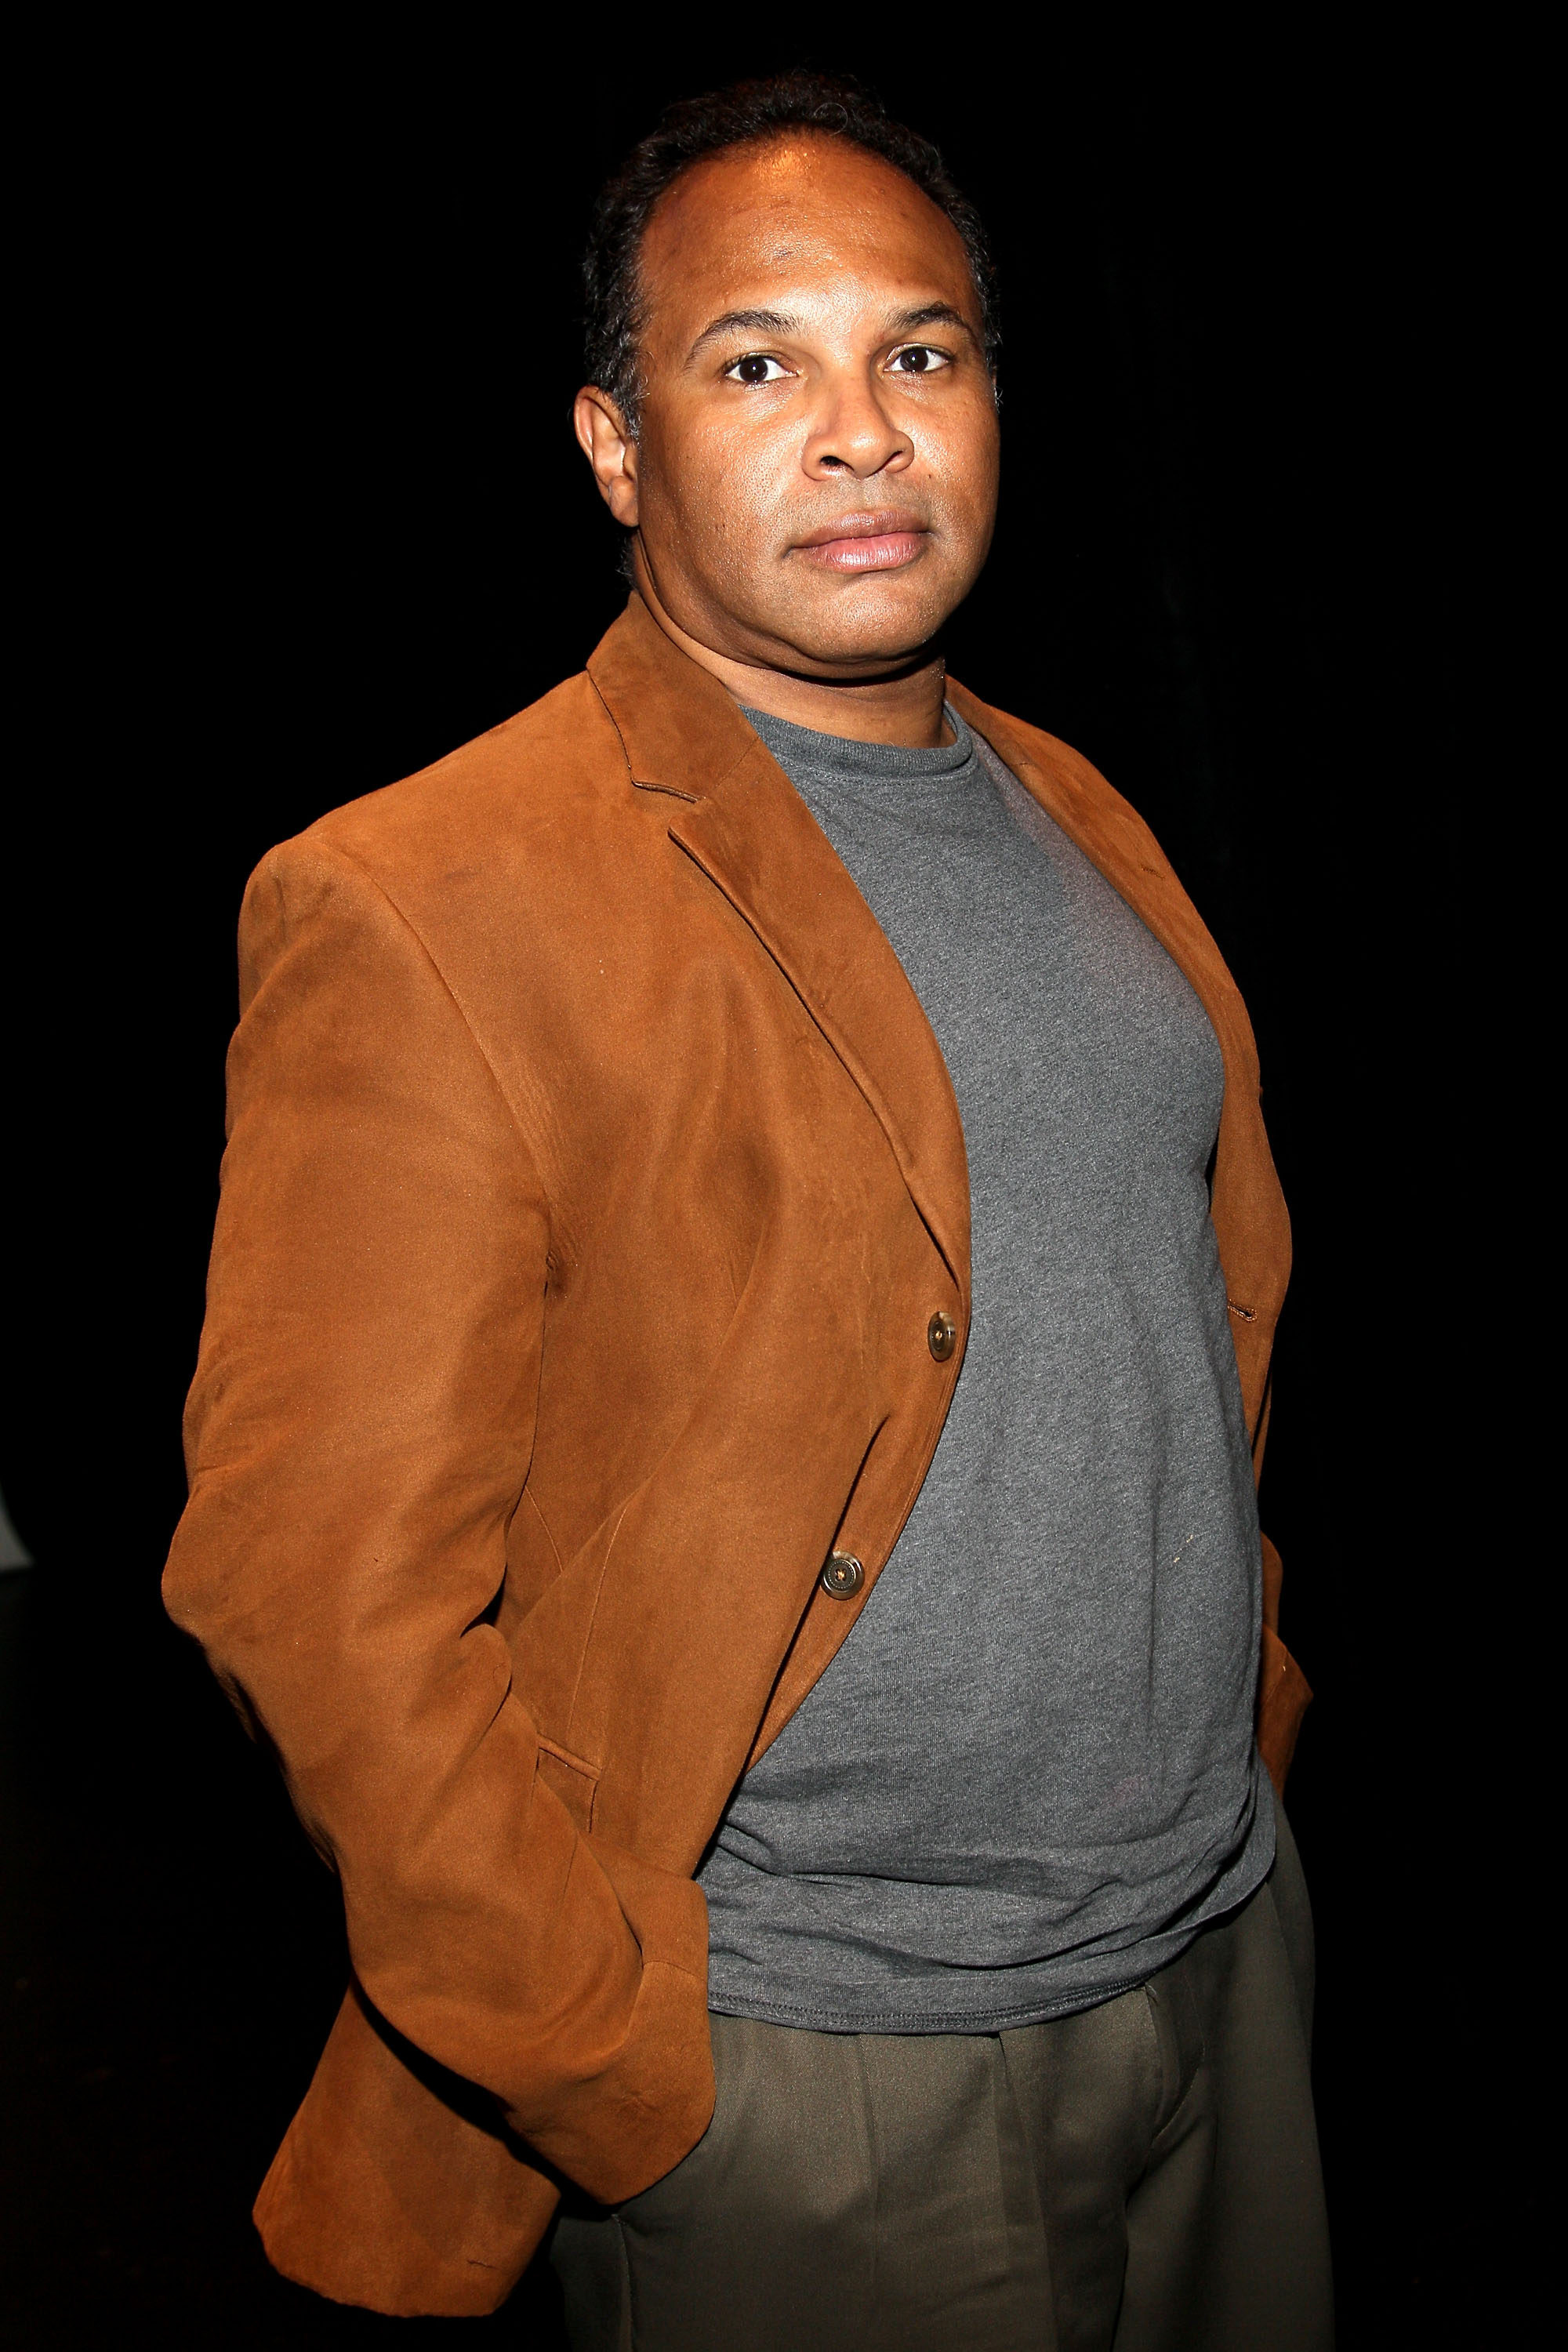 Geoffrey-Owens-Lands-Role-On-NCIS-New-Orleans-Following-Job-Shaming-Backlash